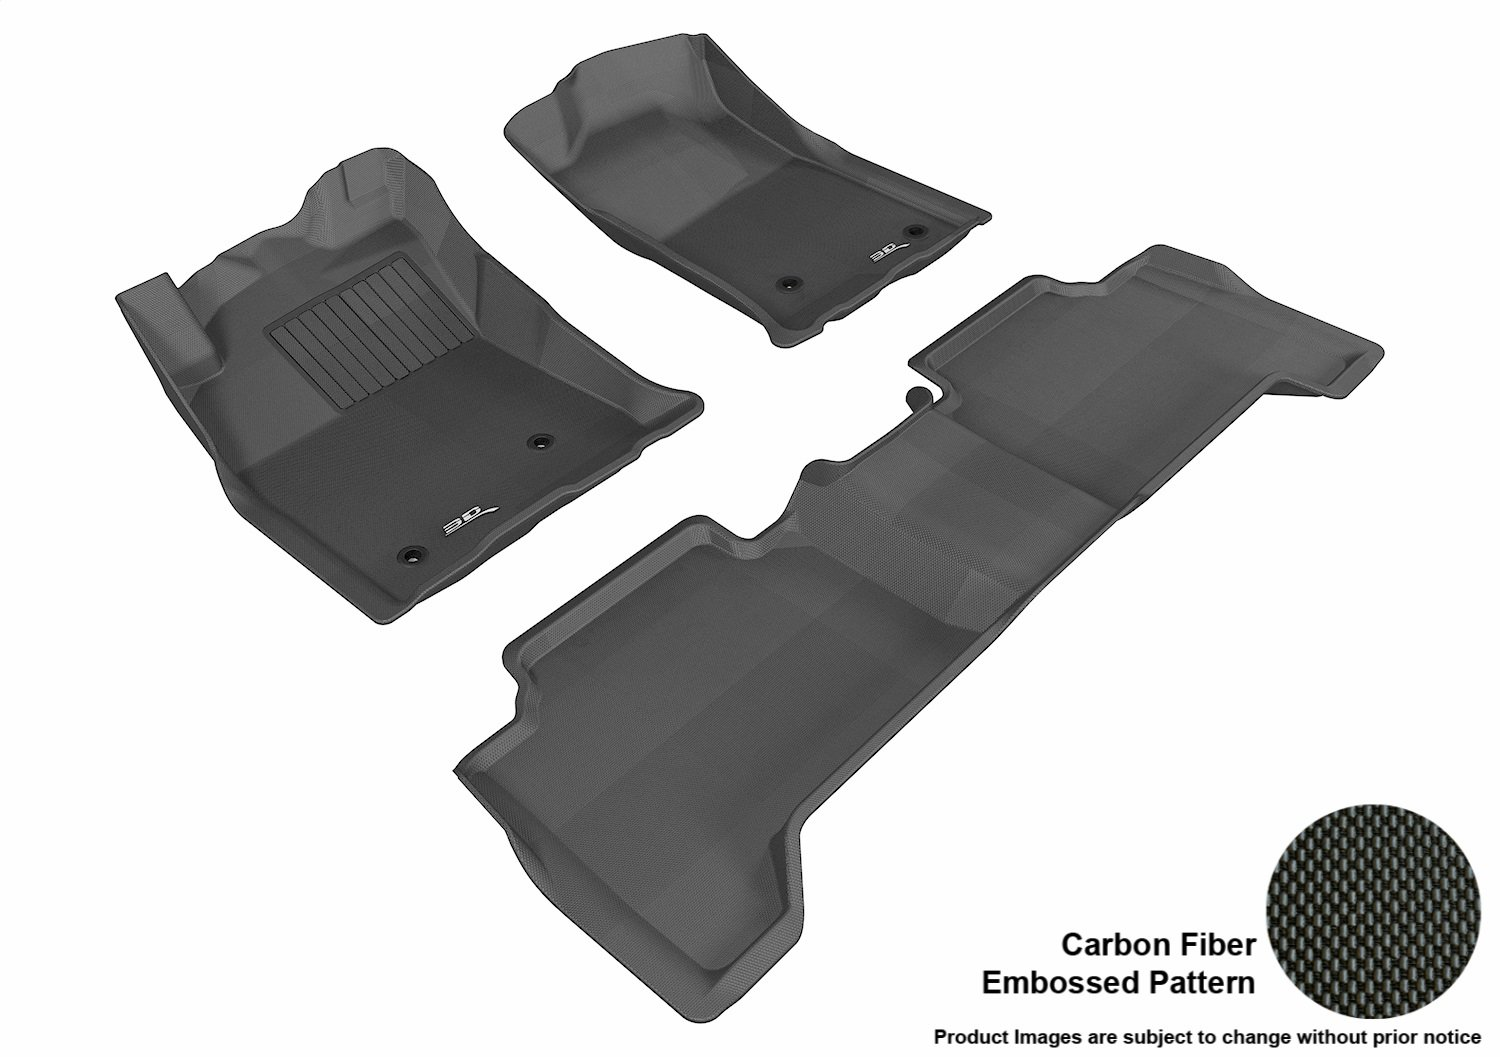 L1TY05701501 Gray 3D MAXpider Complete Set Custom Fit All-Weather Floor Mat for Select Toyota Tacoma Models Kagu Rubber